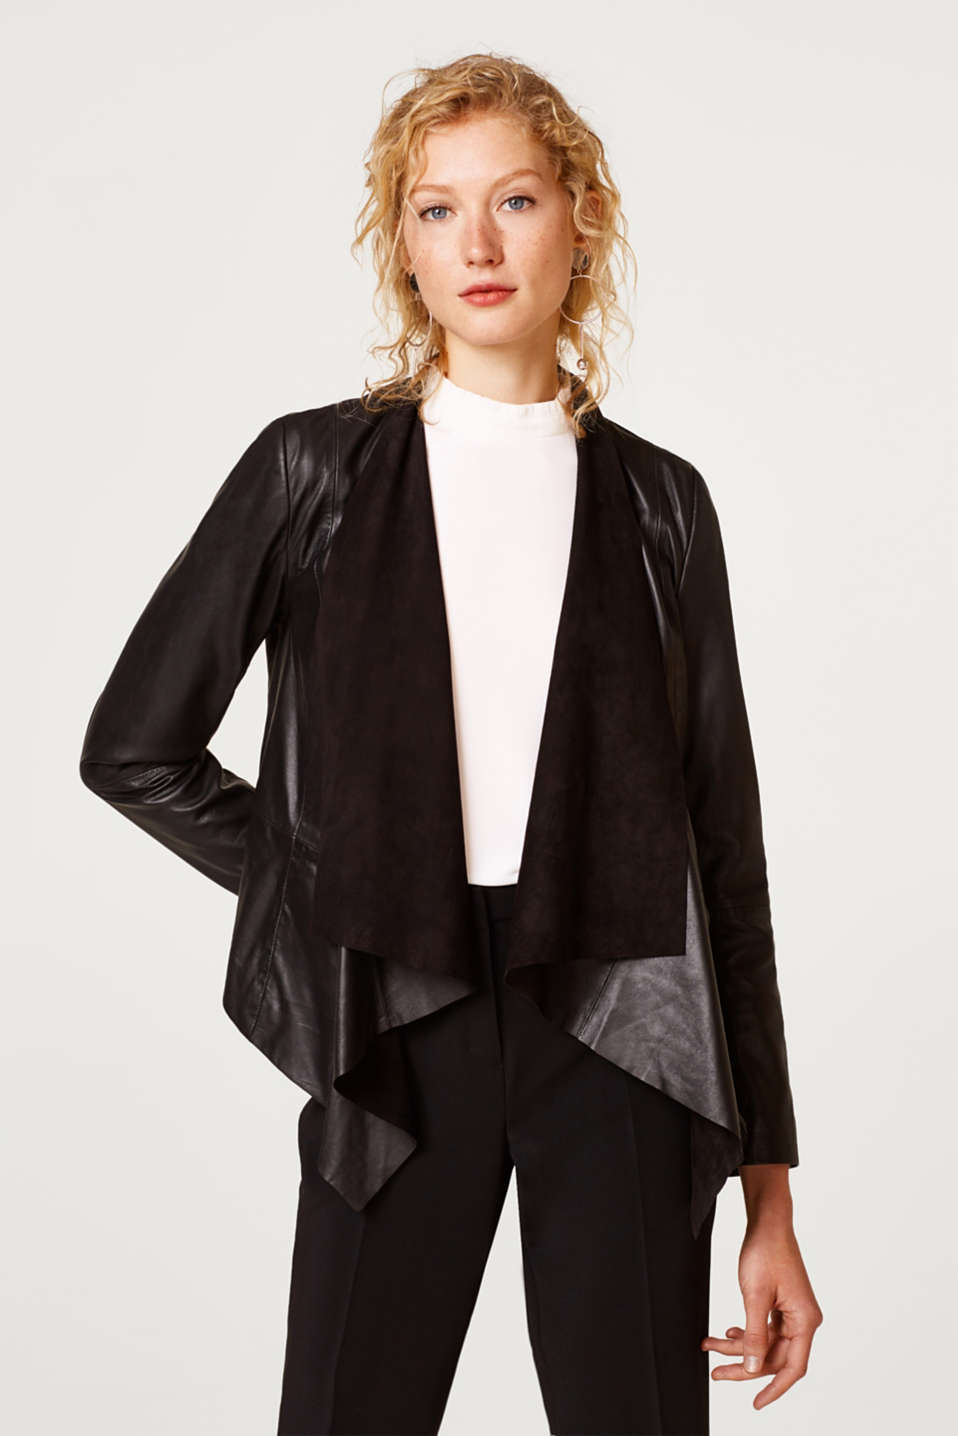 Esprit - Premium blazer with a shawl collar, 100% leather